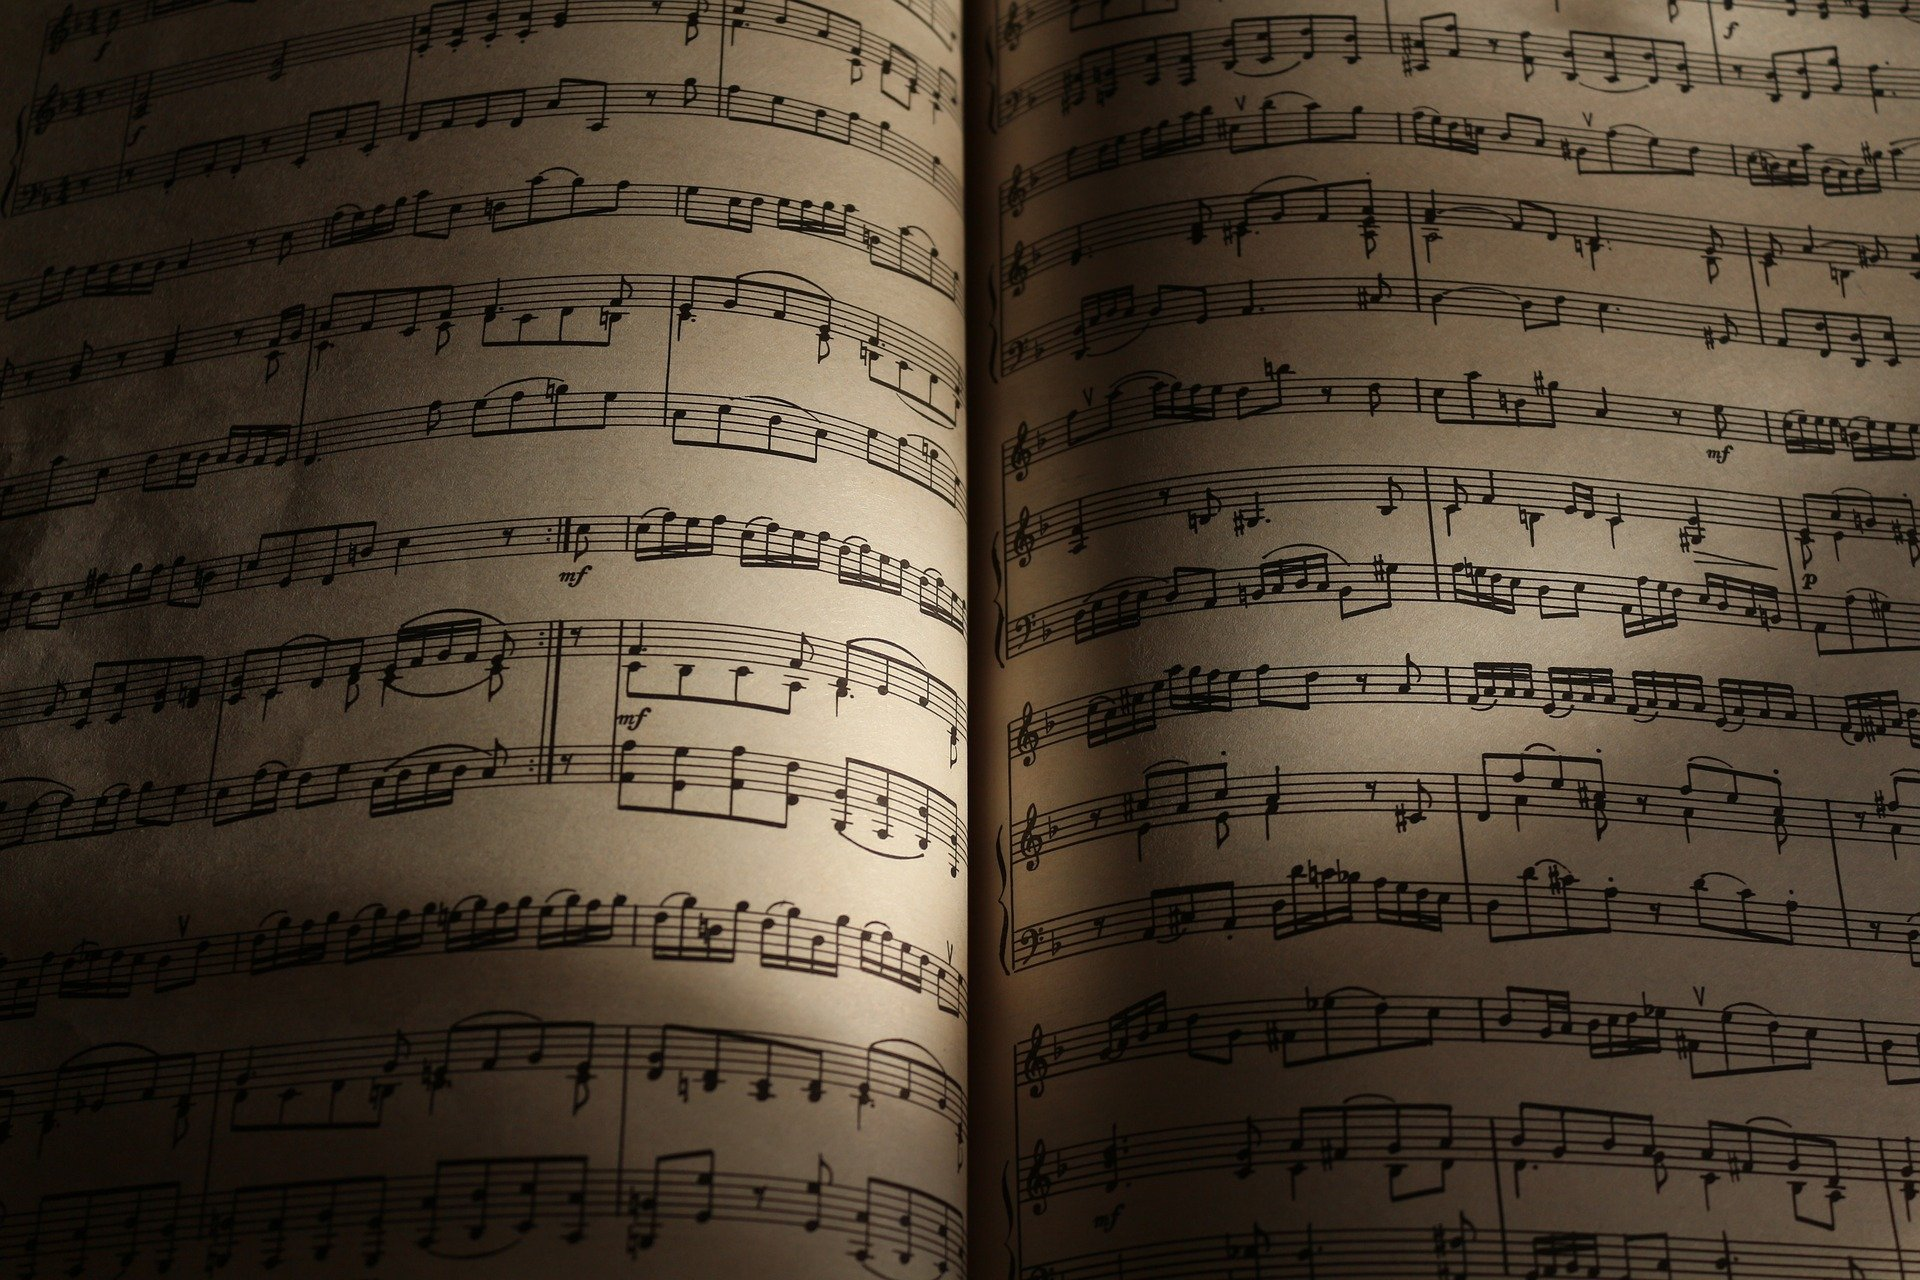 How Effective Is Mental Practice for Memorizing New Pieces?